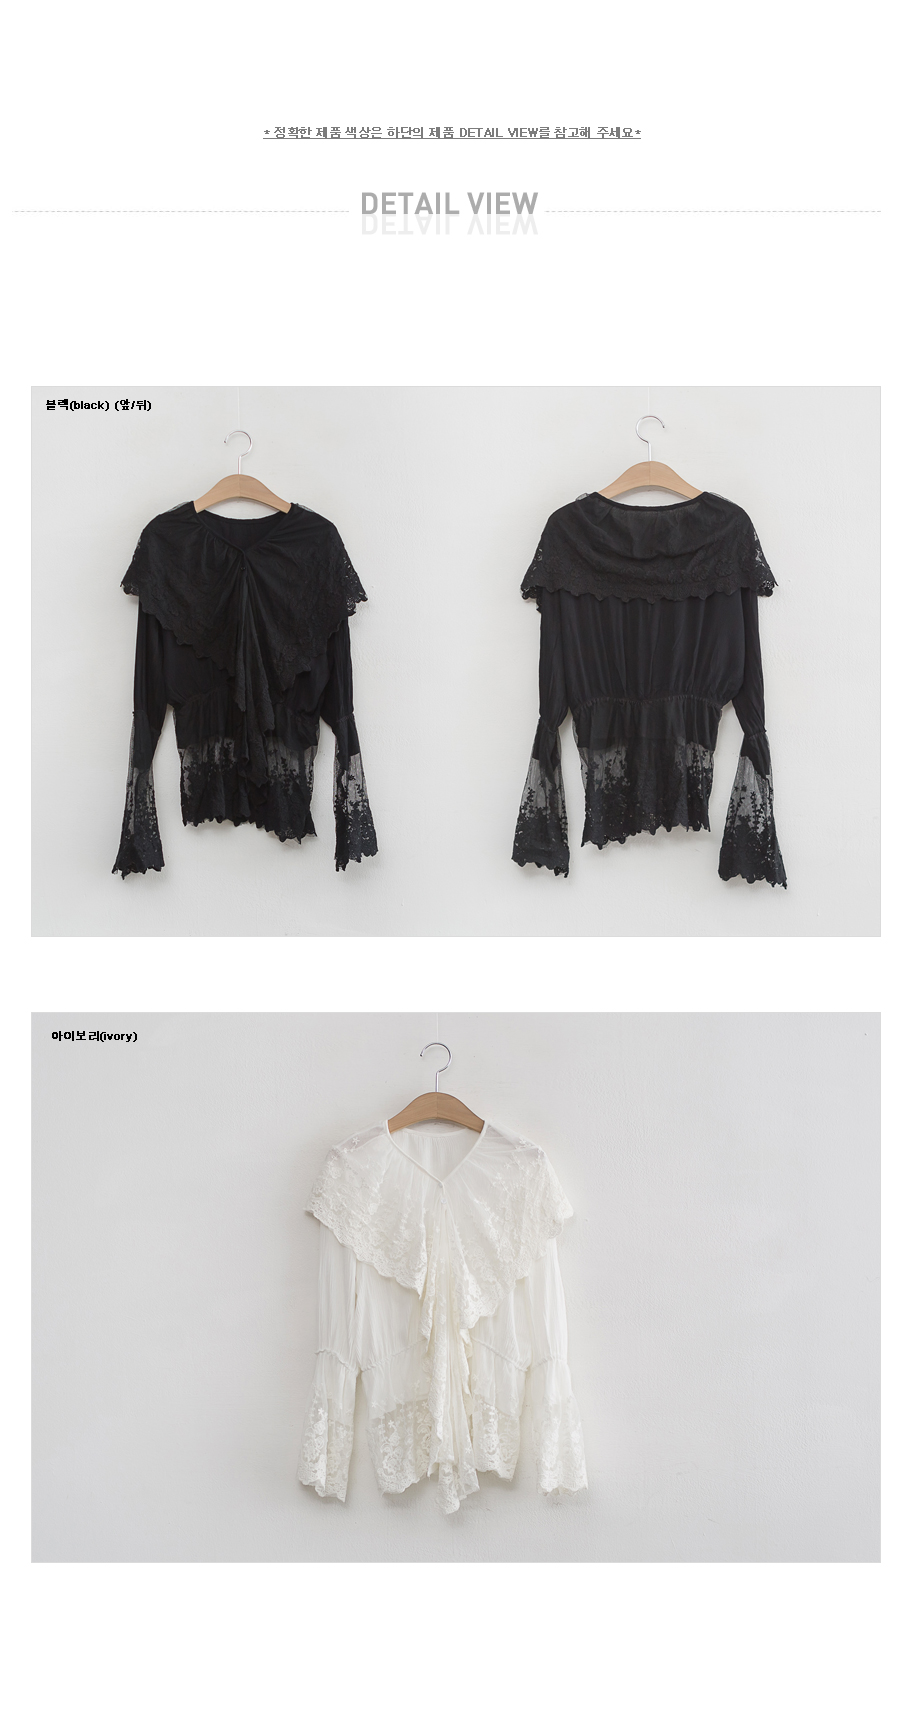 Reloney lace sheer blouse #43946